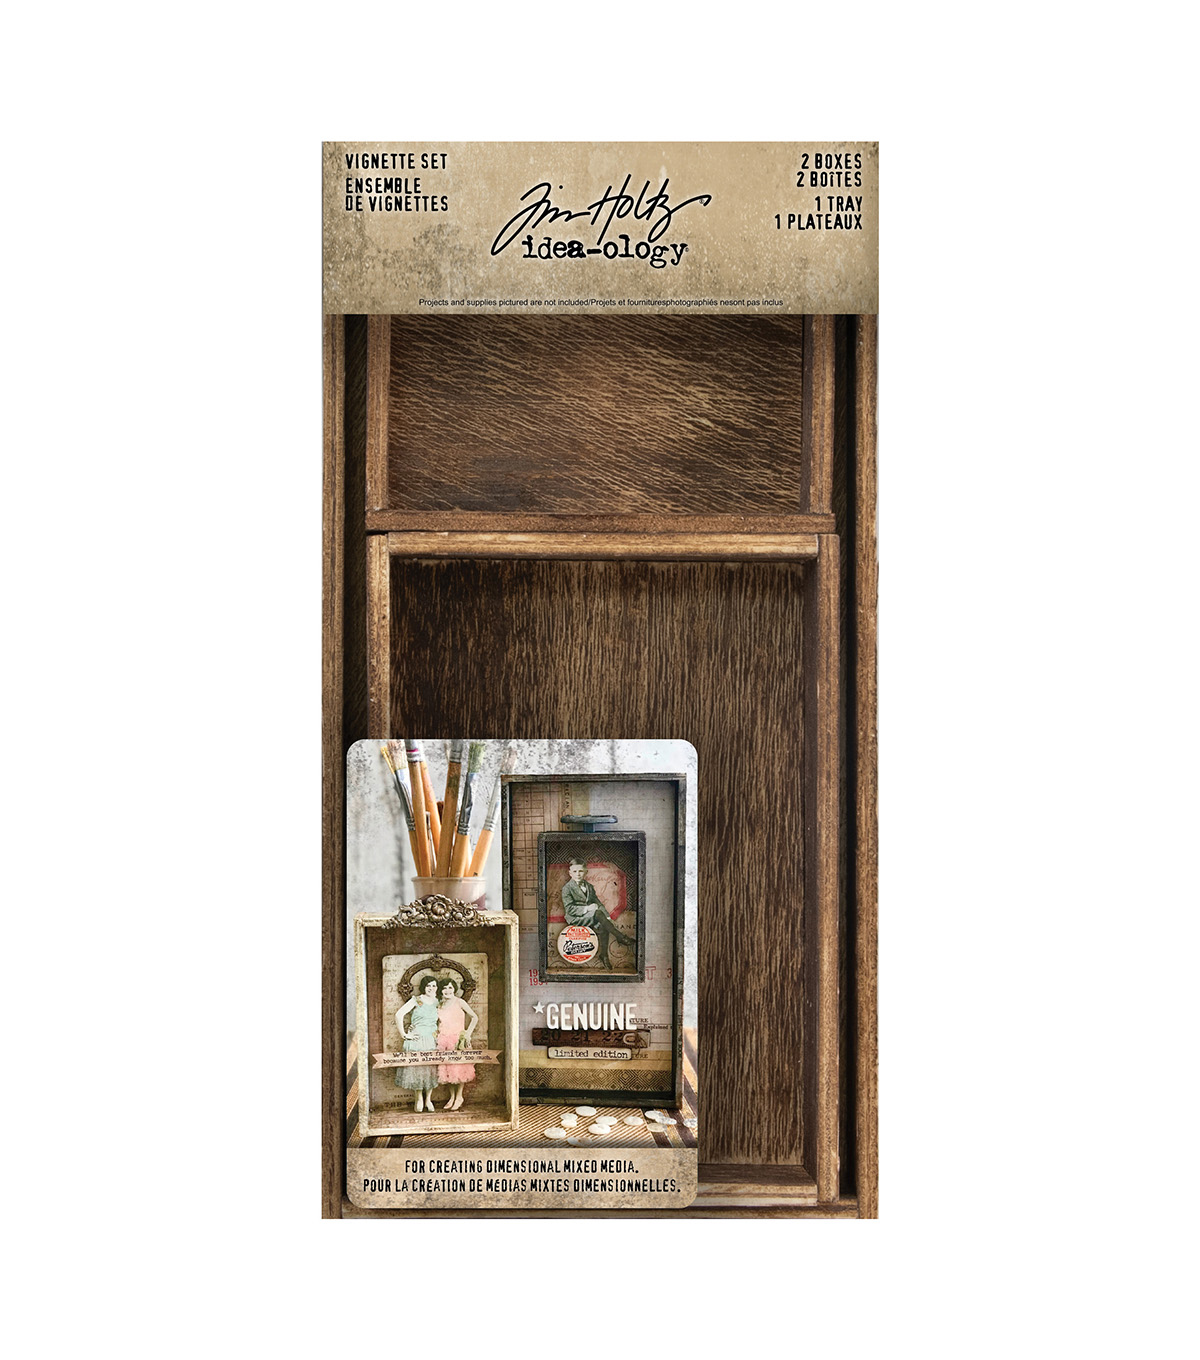 Tim Holtz Idea-Ology Vignette Box Set/3-2 Boxes, 1 Tray